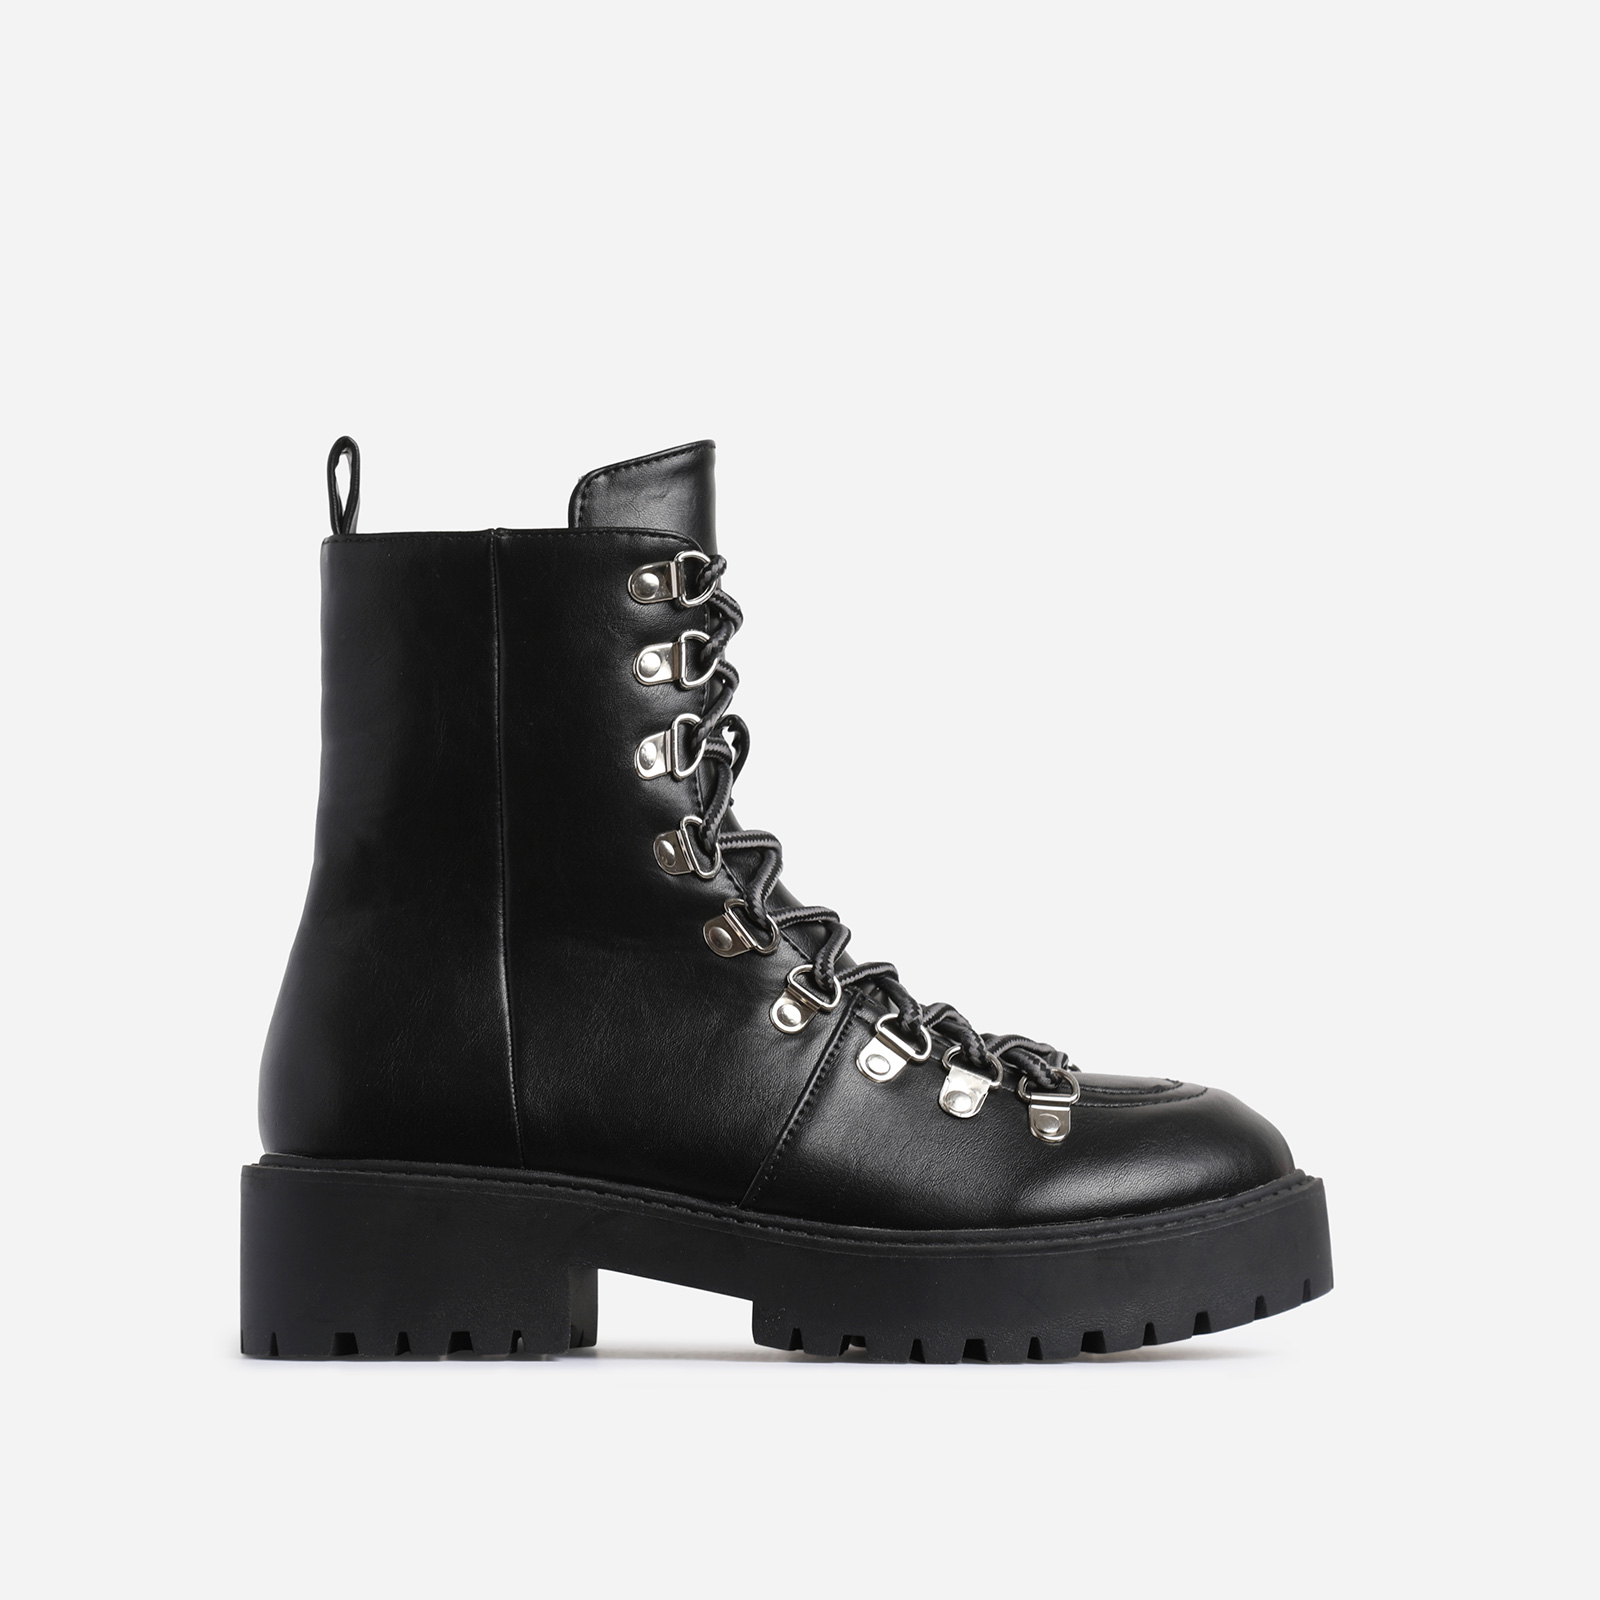 Phoenix Black Lace Up Ankle Biker Boot In Black Faux Leather